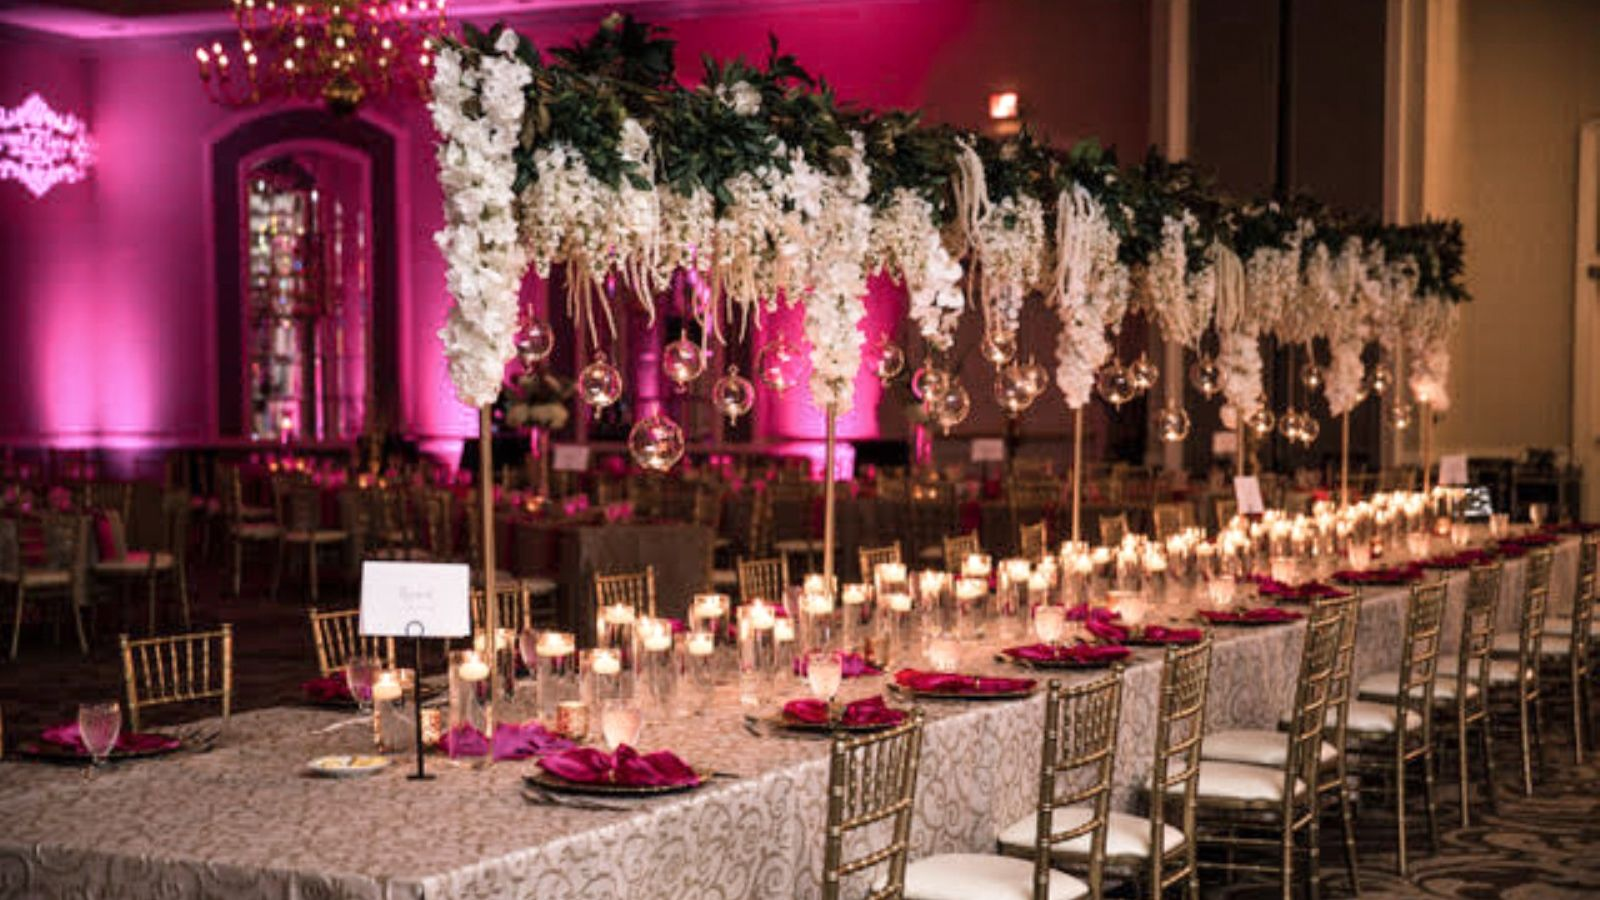 Wedding venues in charlotte nc le mridien charlotte le mridien charlotte receptions junglespirit Images